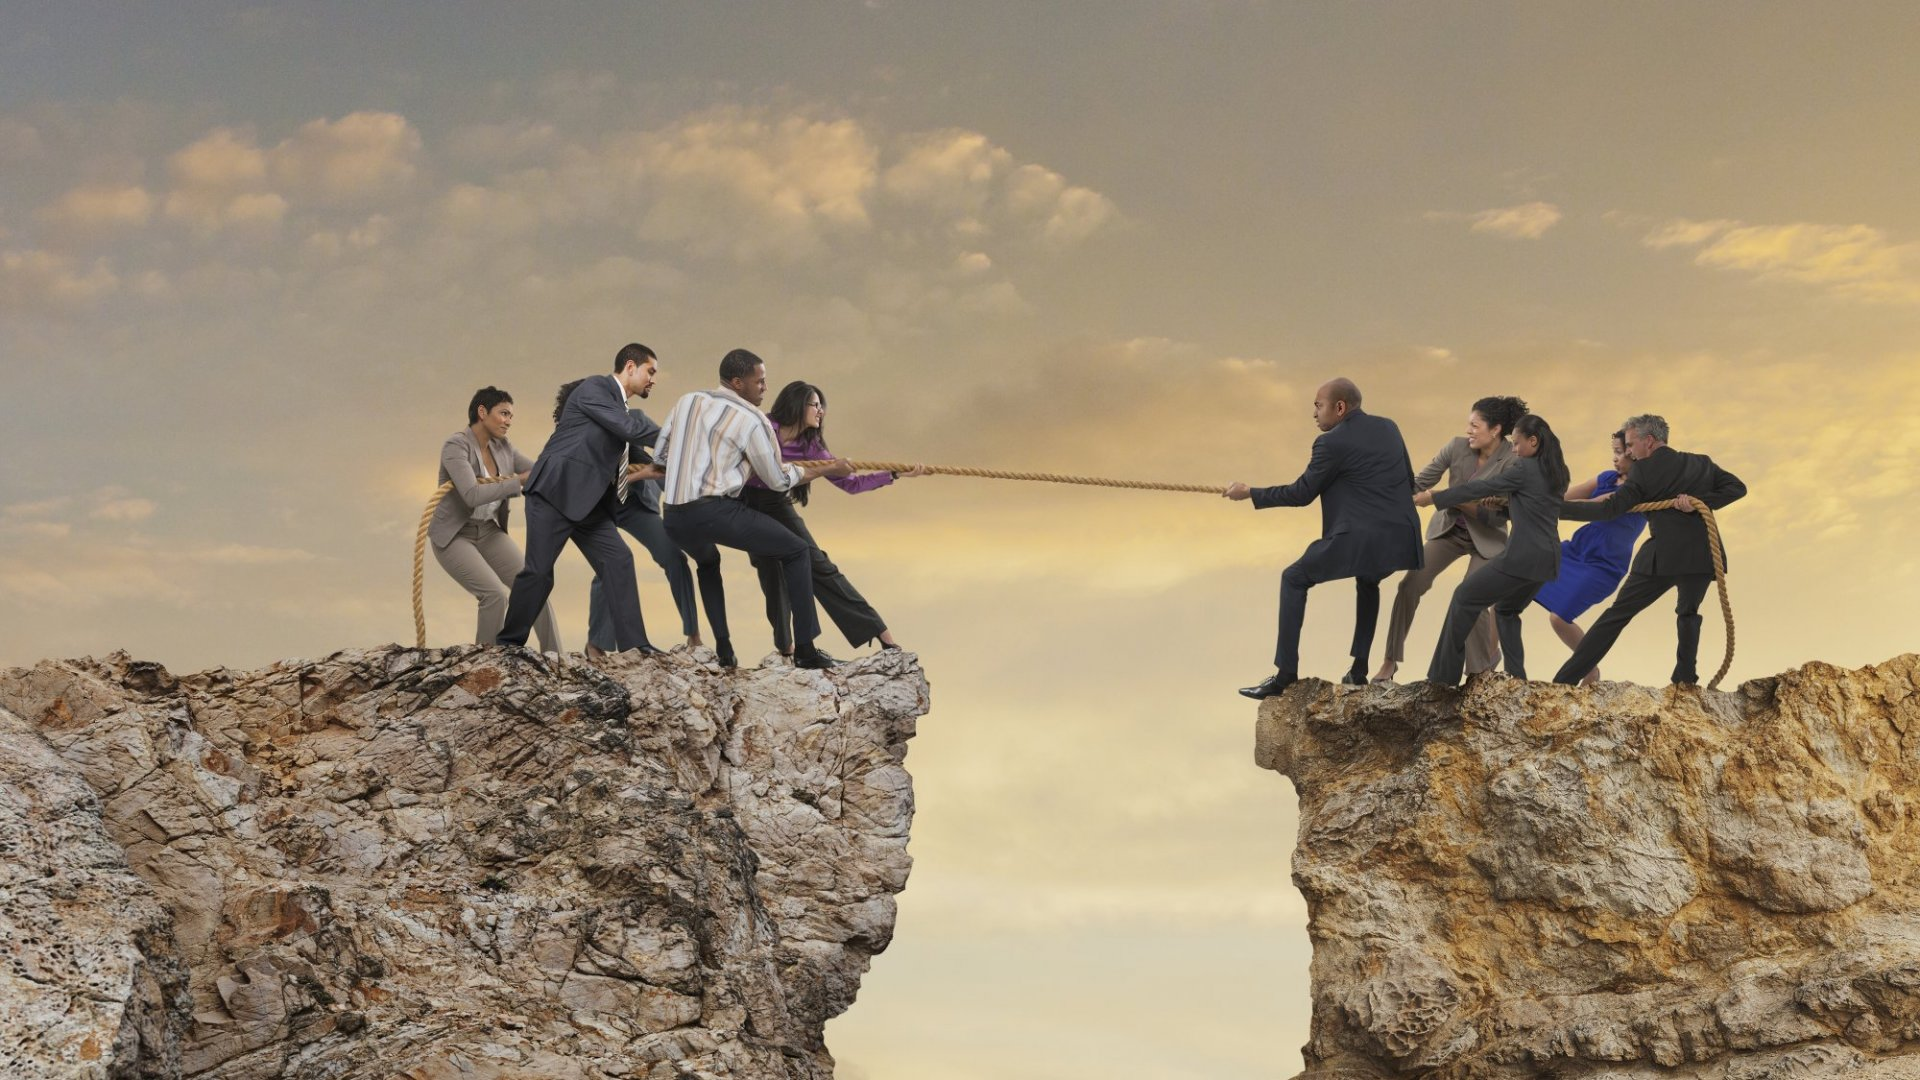 High Performance Starts With Employee Engagement, But You Need More Than That